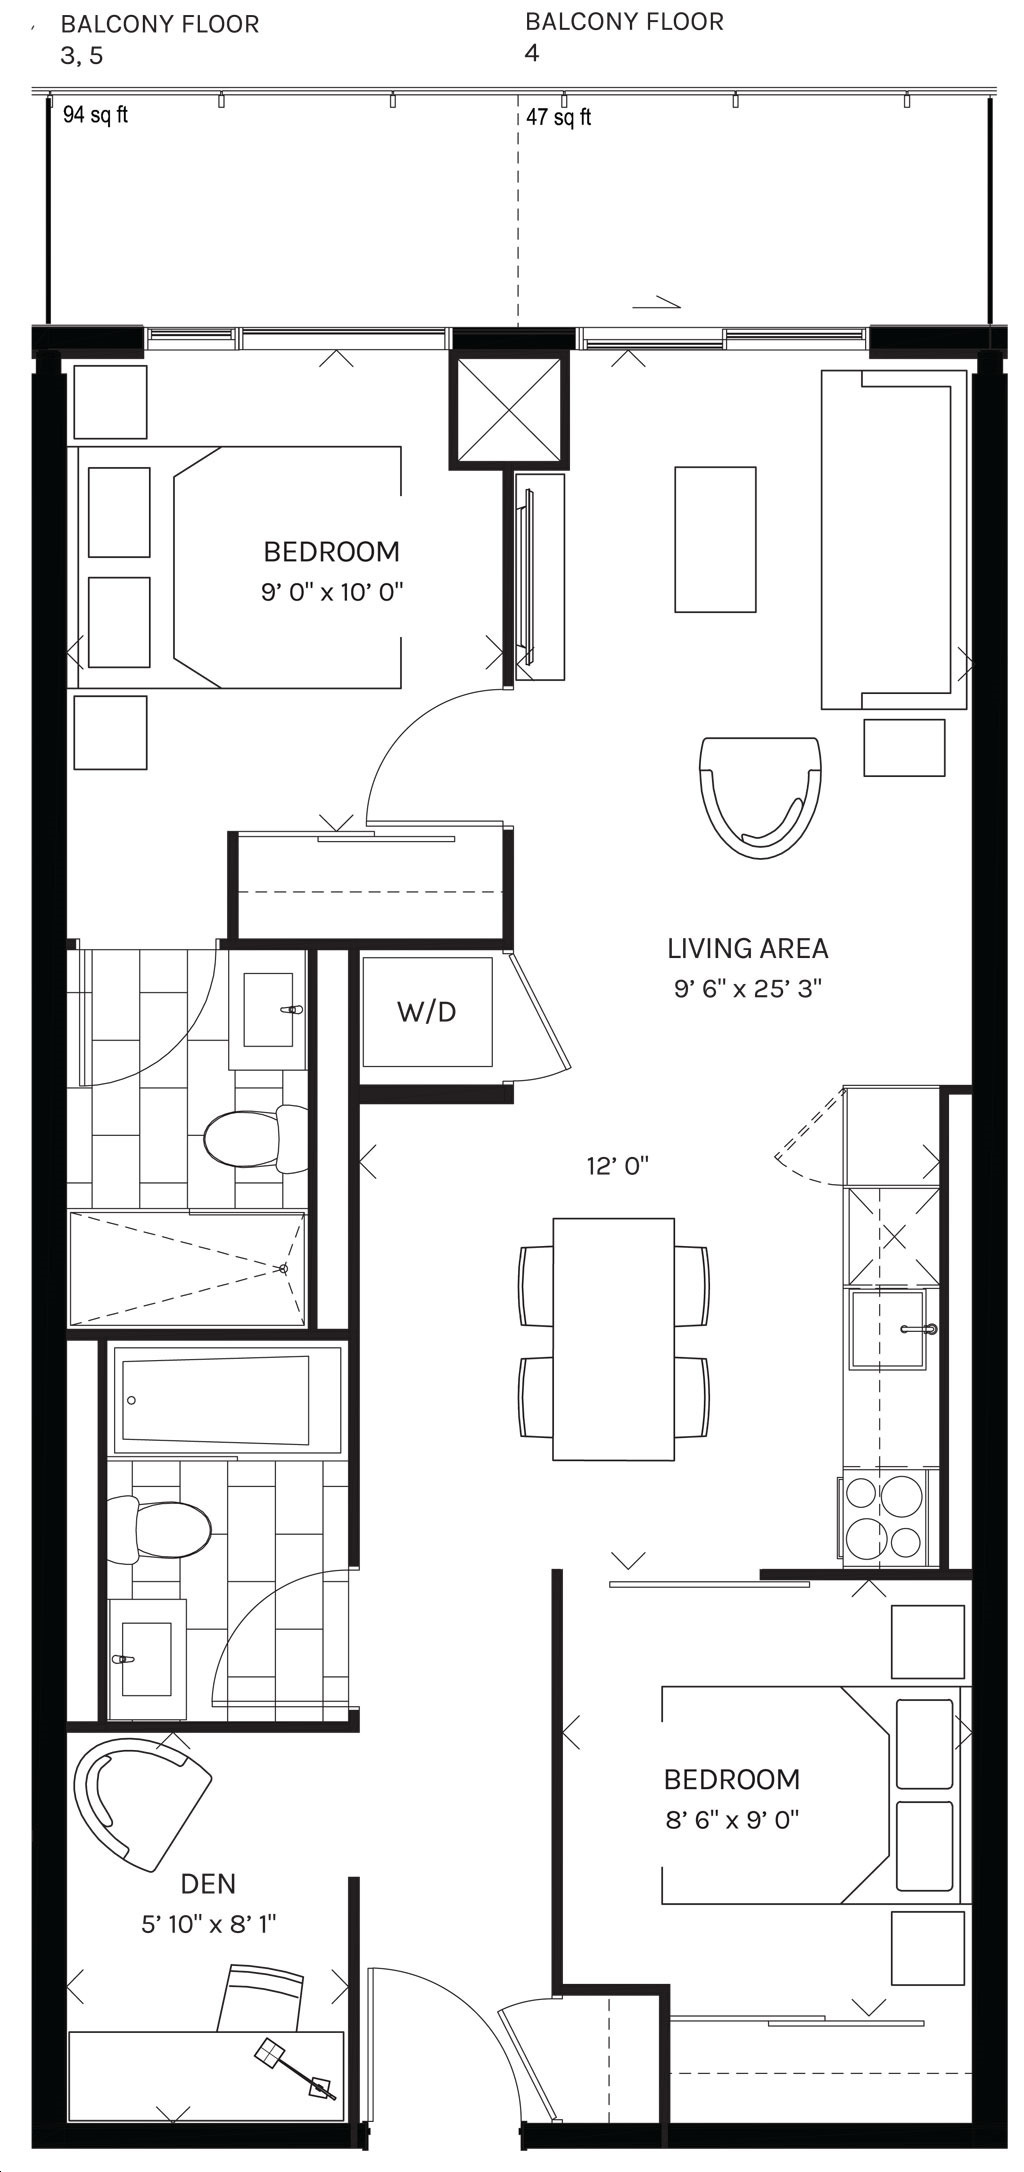 Canary Commons Condos by Dream-Development Model Q112 Floorplan 12